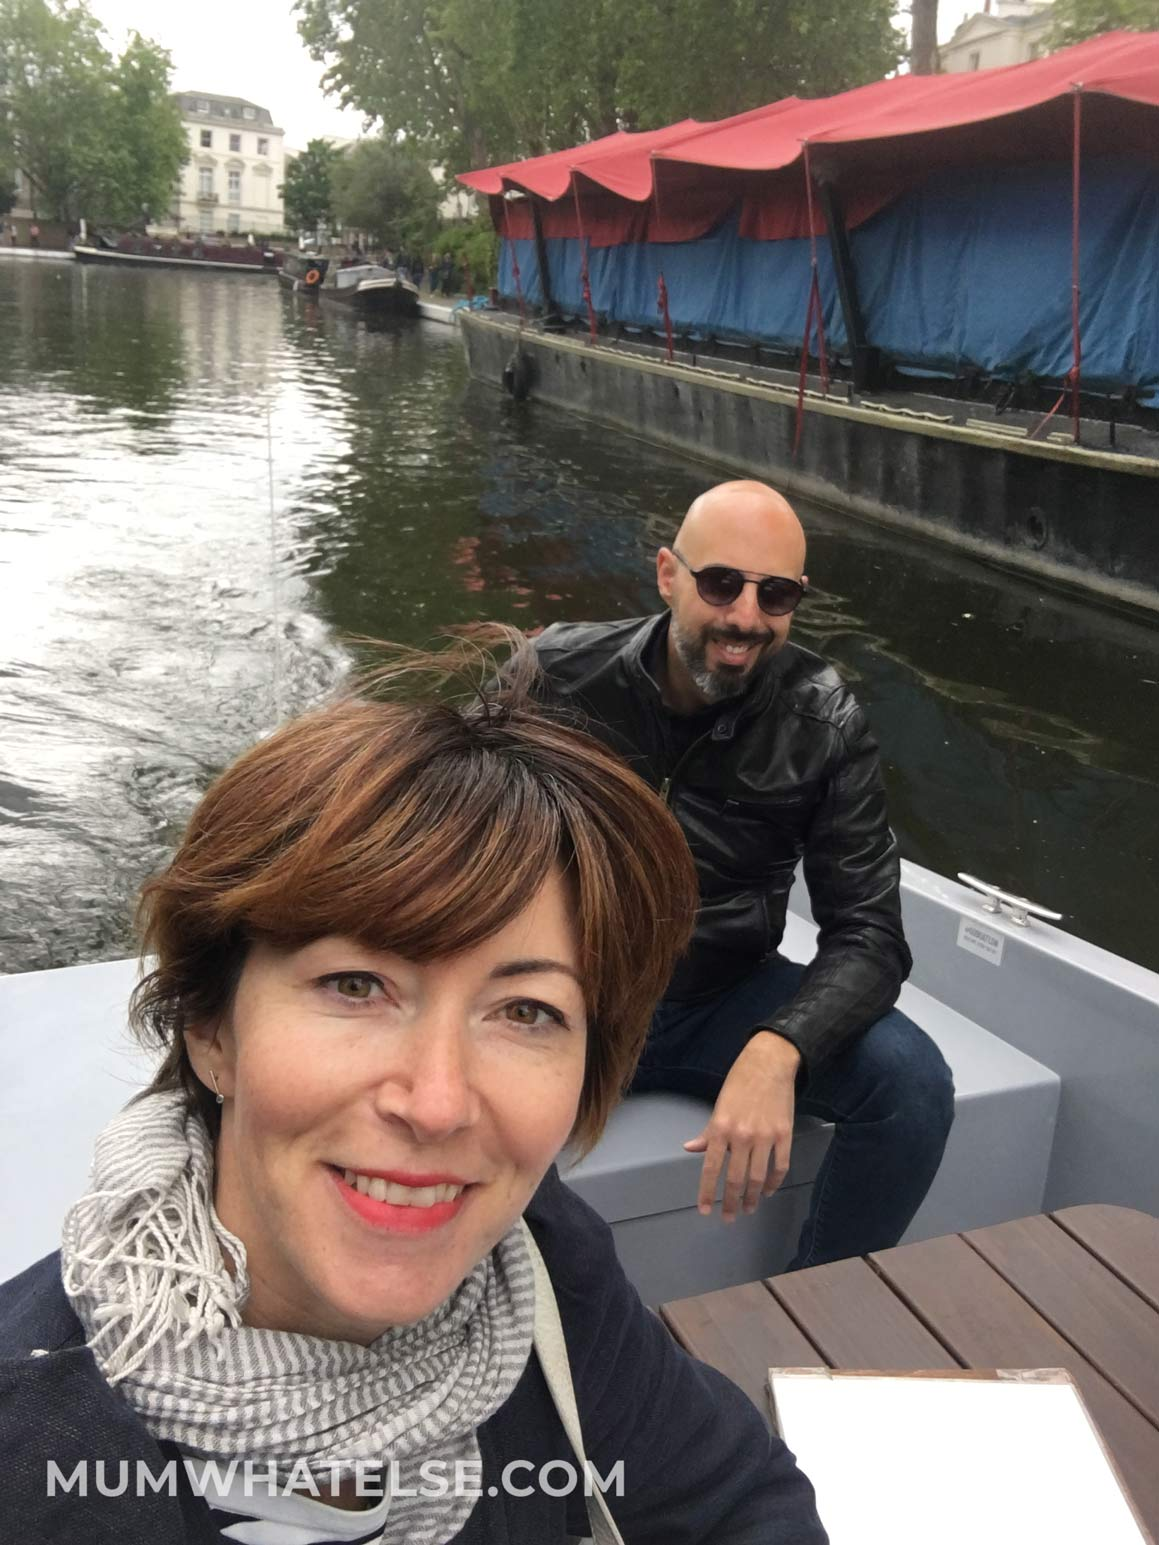 Two people in boat smiling